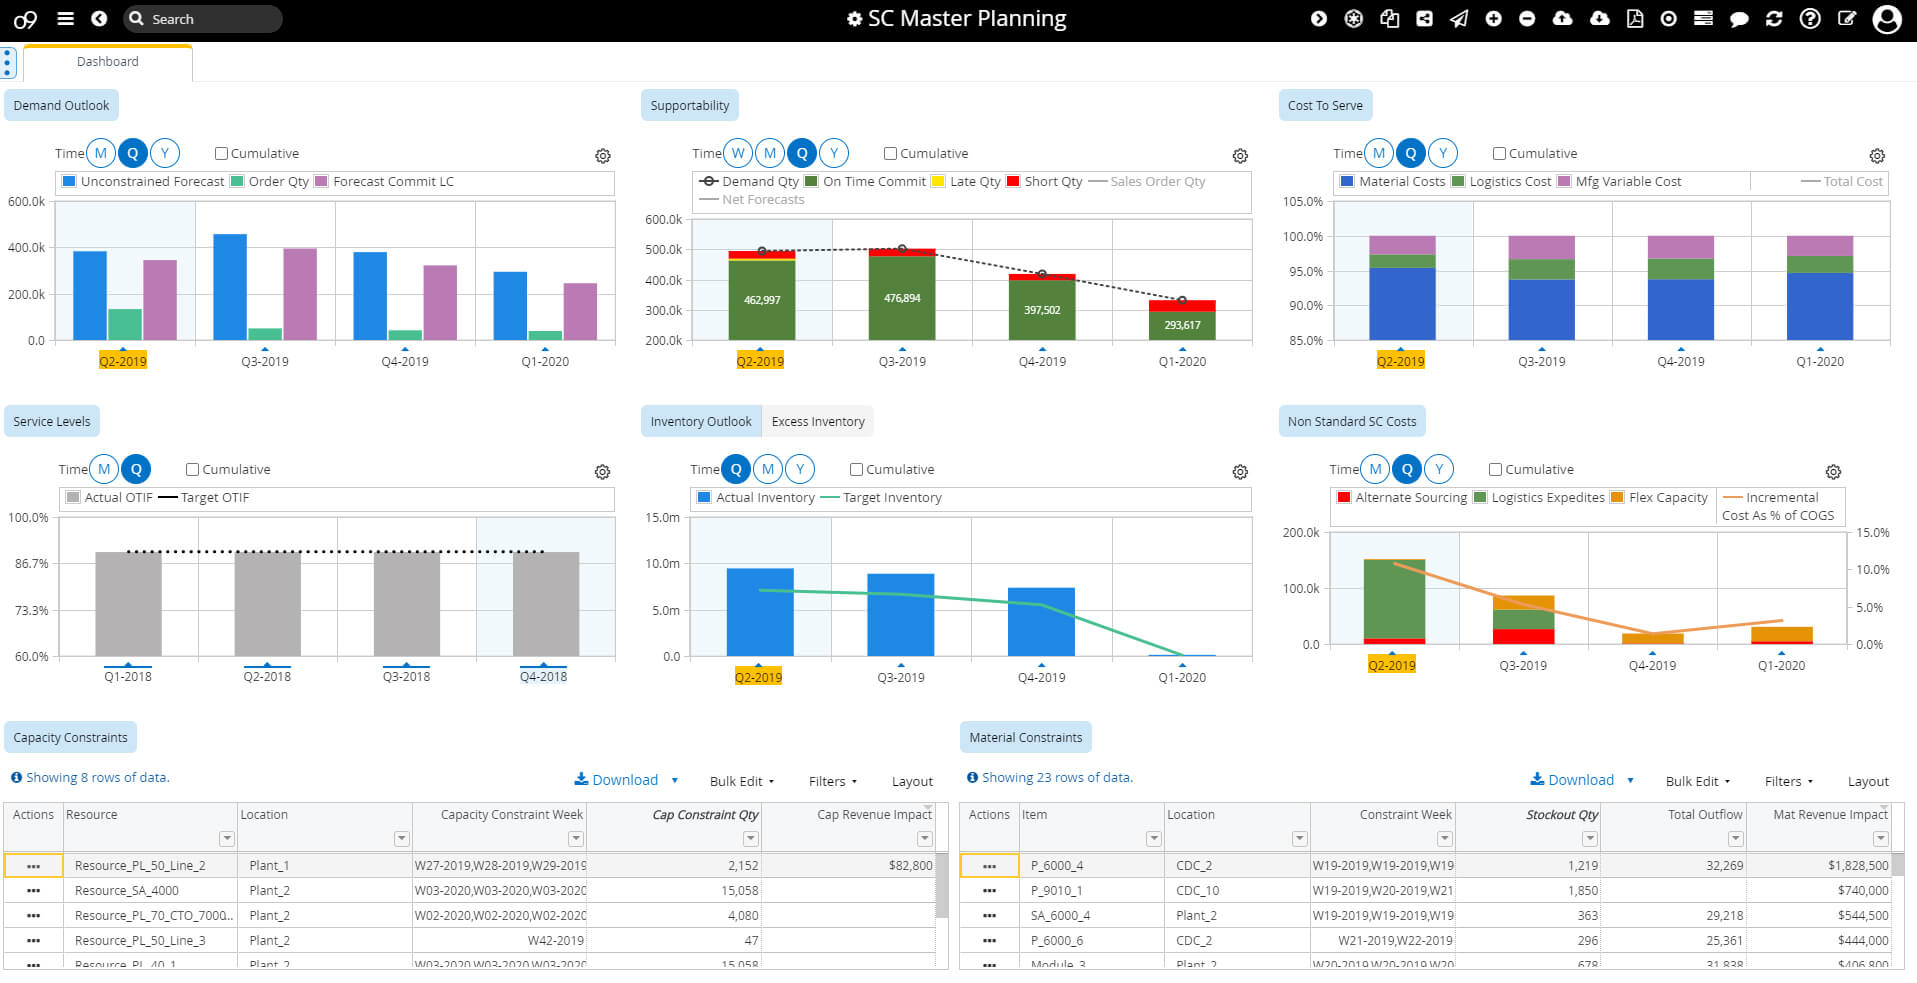 o9 Solutions' Supply chain analytics software interface